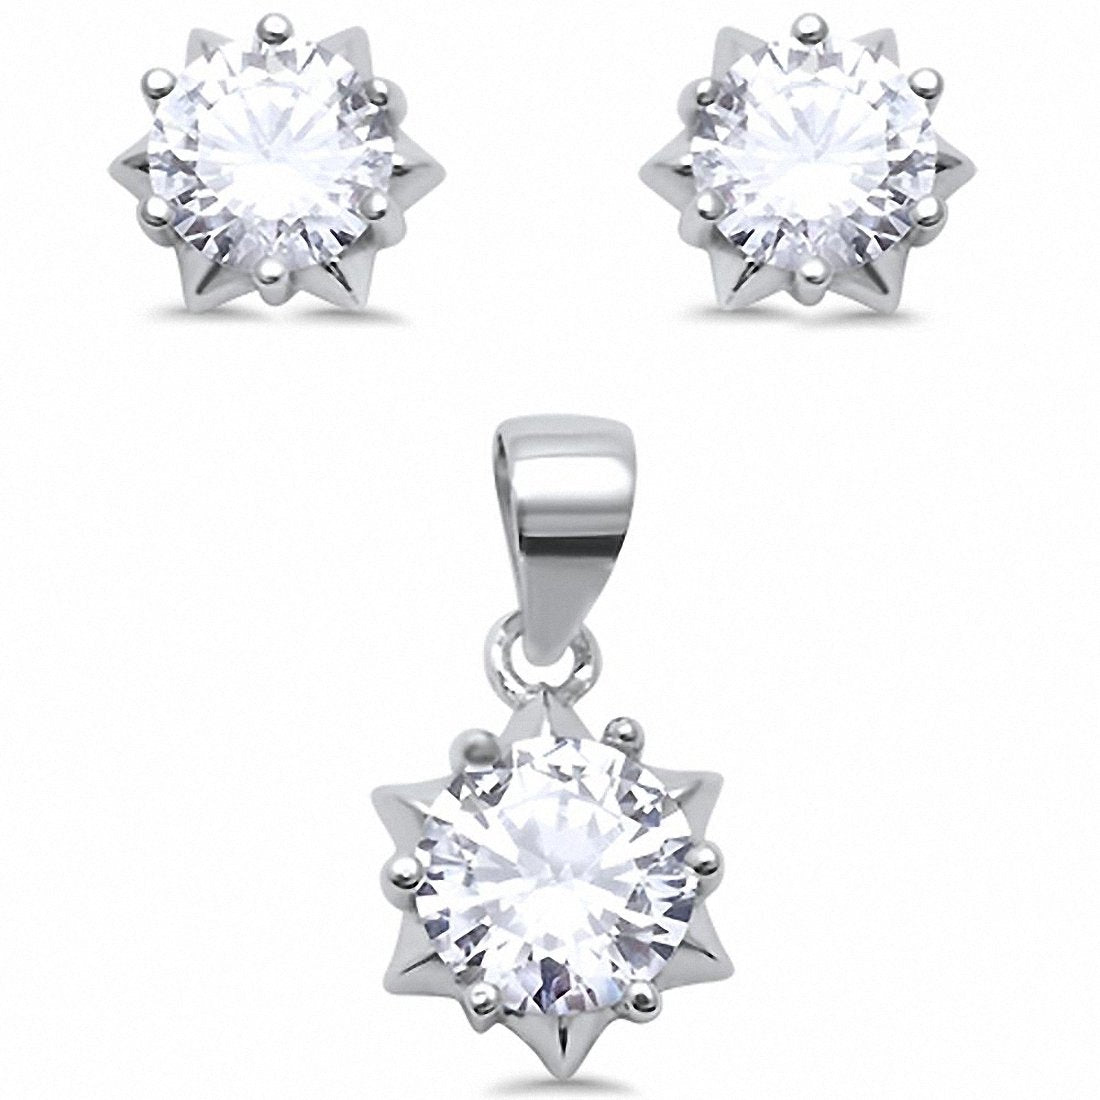 Star Design Jewelry Set Pendant Earring Round Simulated Cubic Zirconia 925 Sterling Silver Choose Color